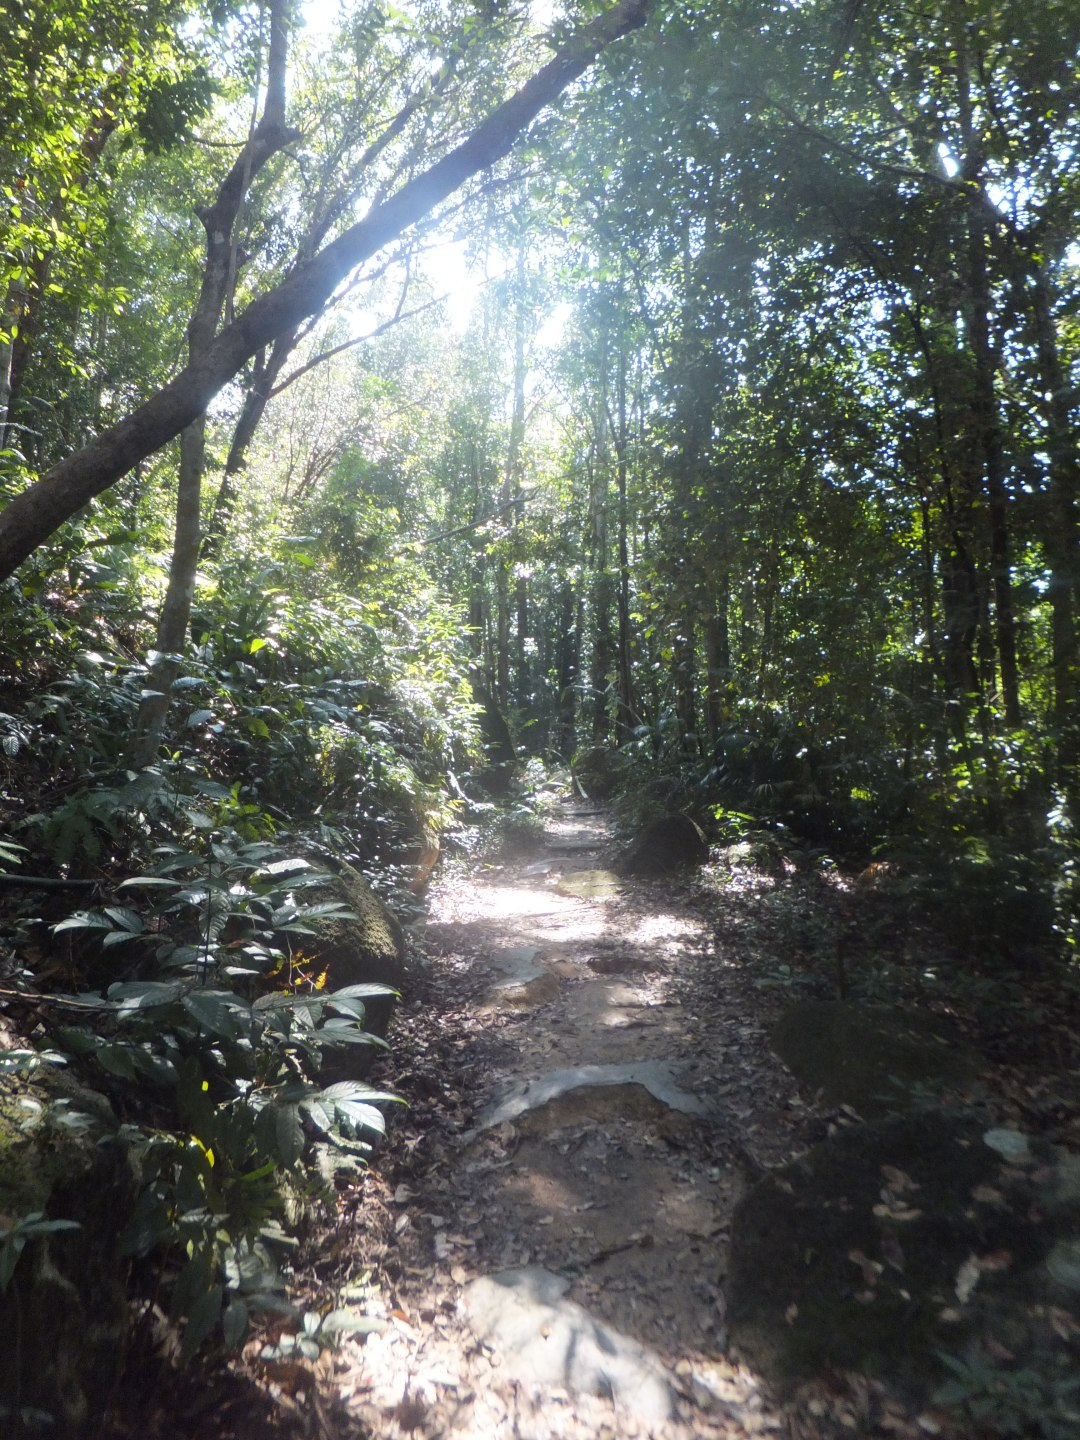 Backpackers in Malaysia